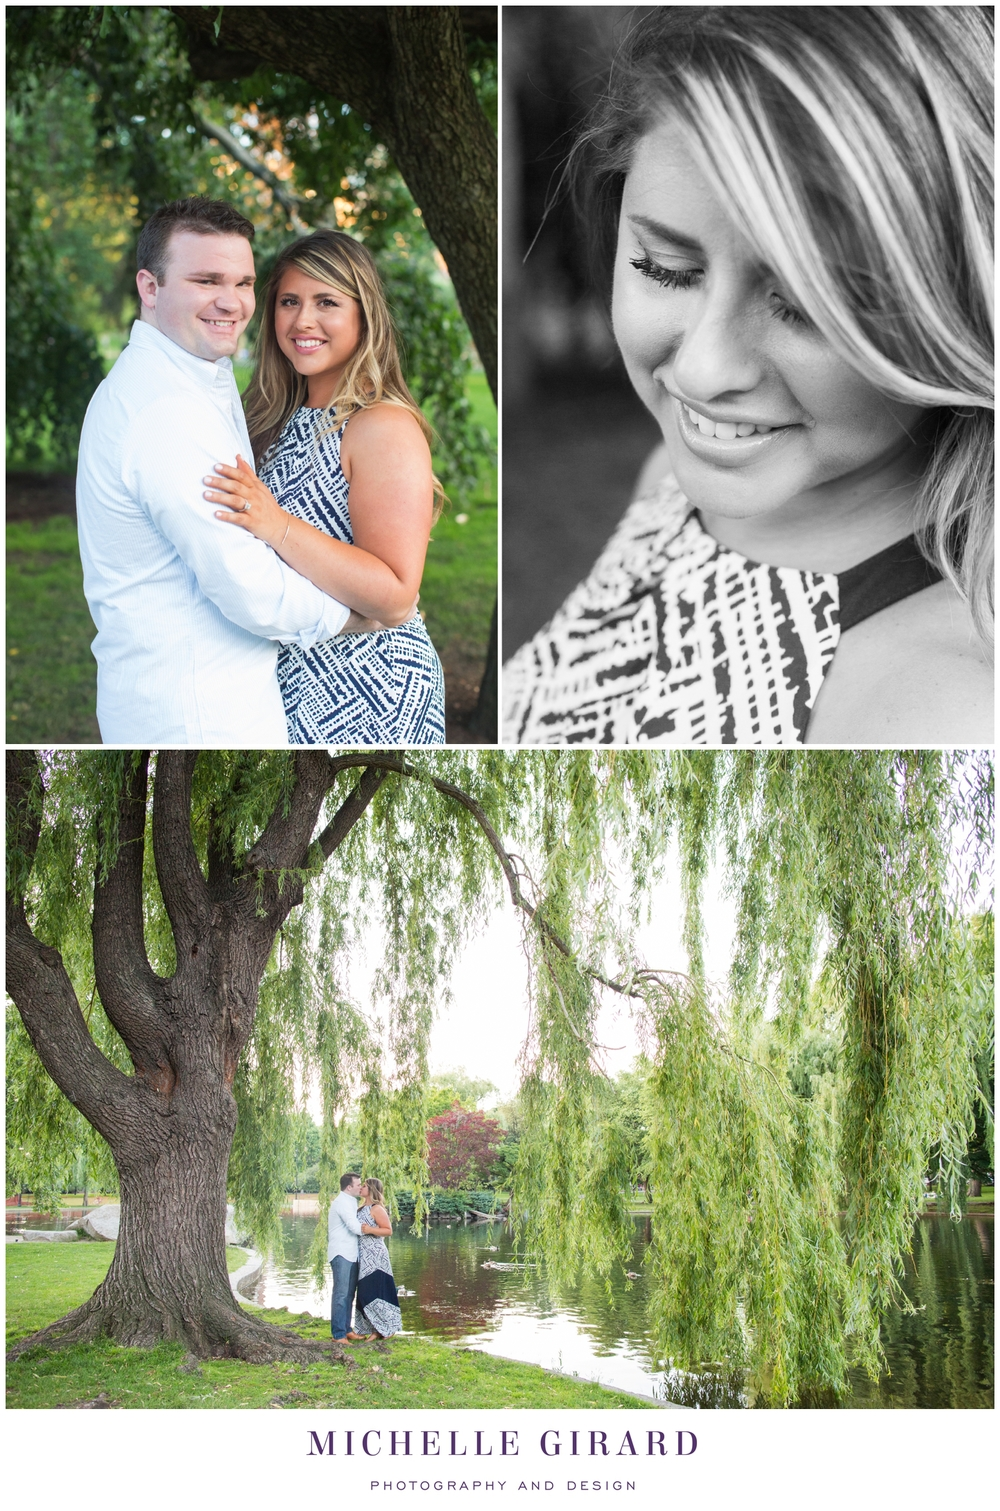 BostonCommonsGardens_BostonEngagementSession_MichelleGirardPhotography01.jpg